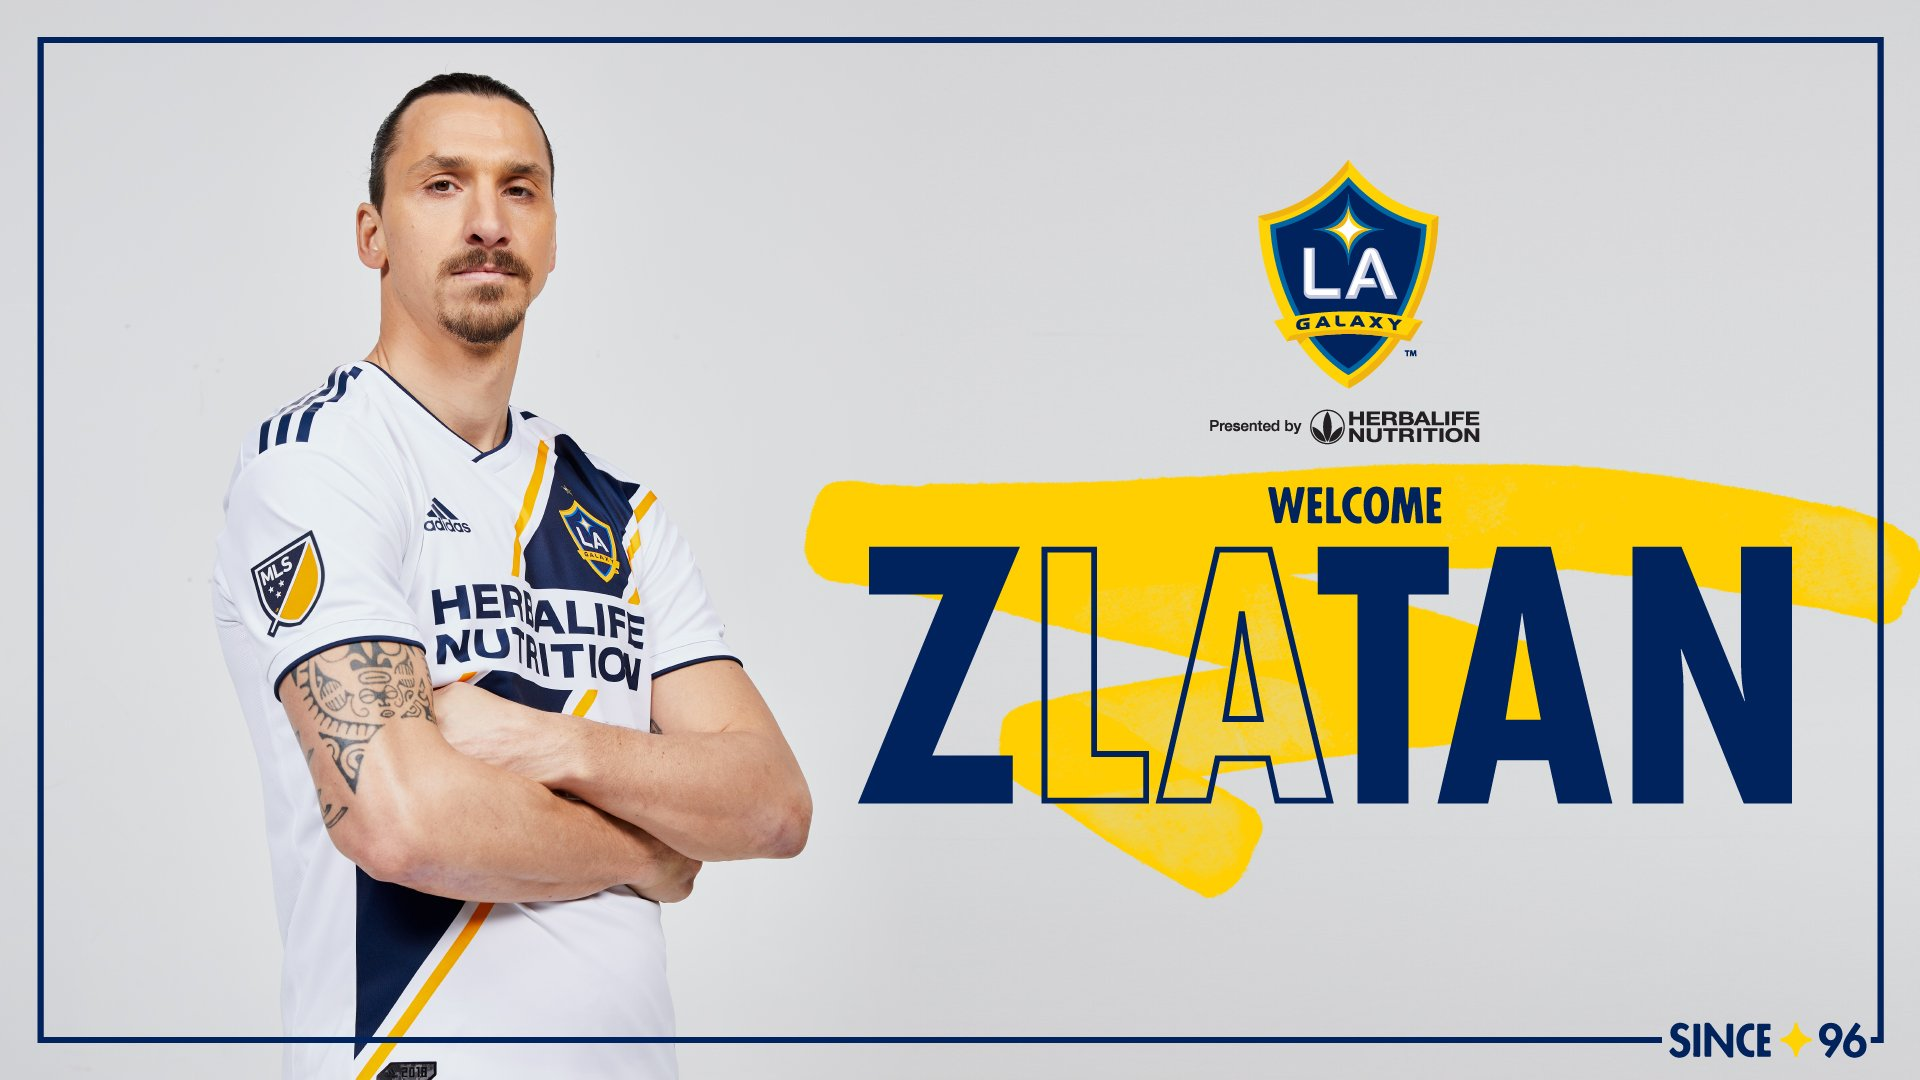 la galaxy confirm ibrahimovic signing swedish star